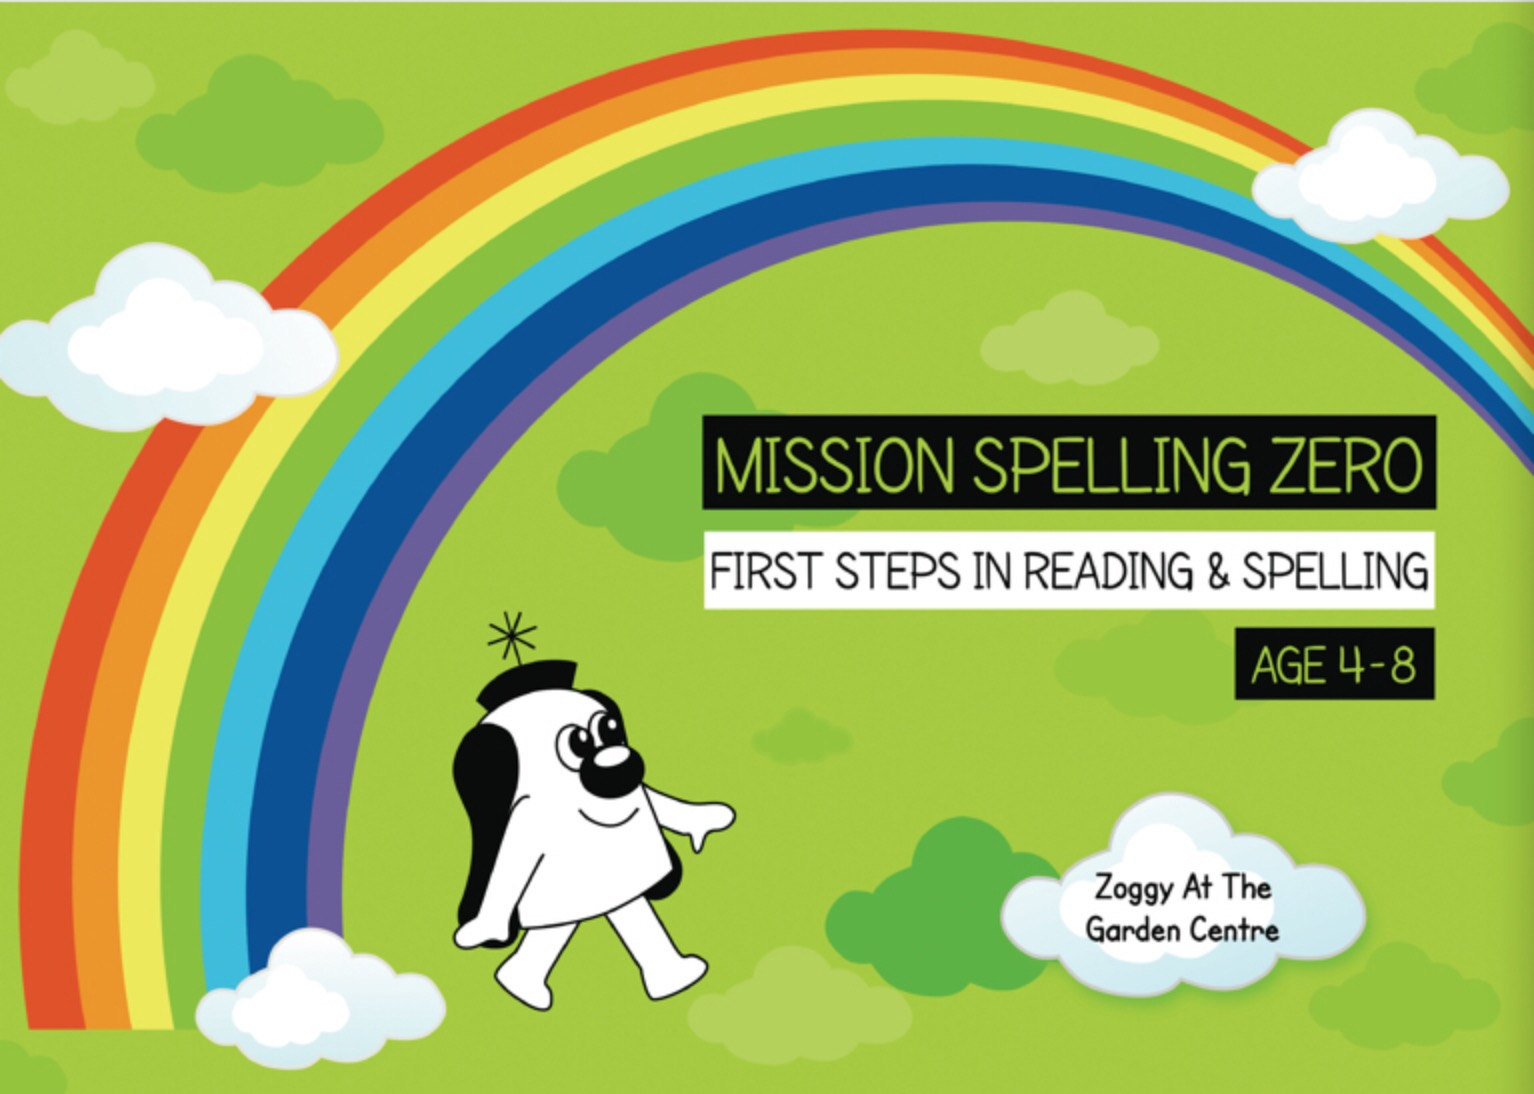 Long Vowel Sounds, Magic E And Vowel Digraphs: Zoggy At The Garden Centre (Print Edition)